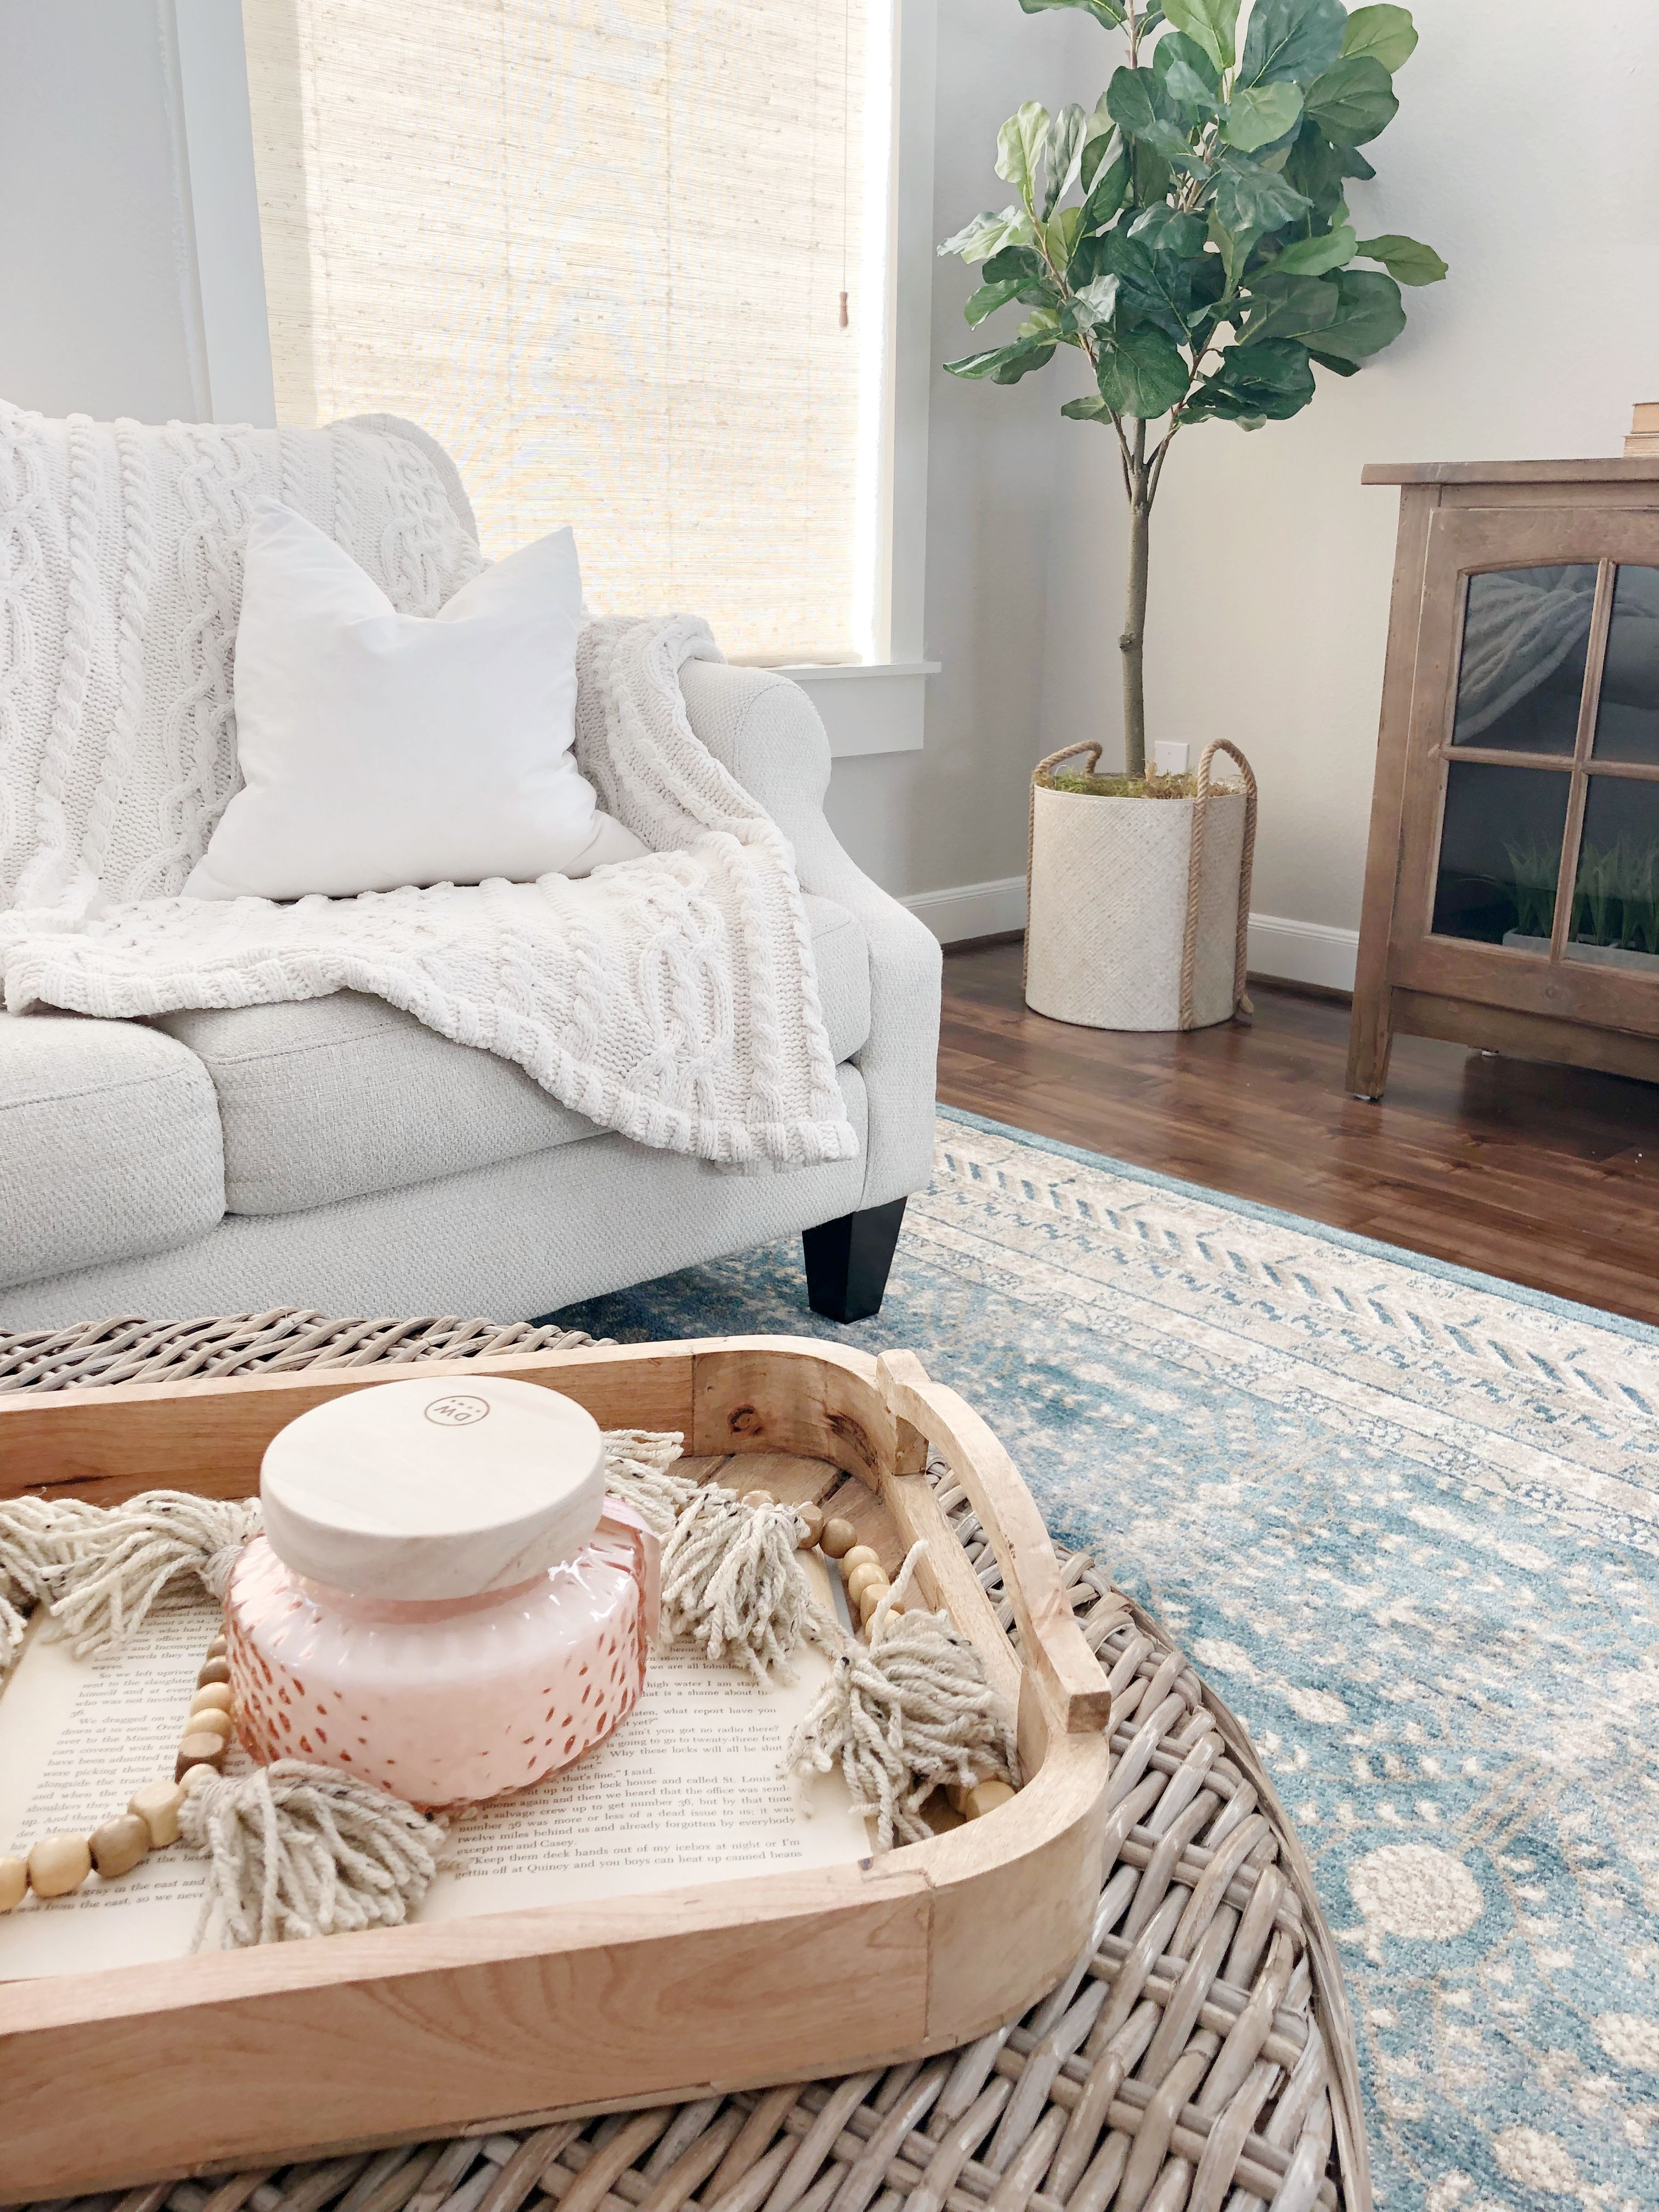 Living room inspo - The Blooming Nest Blog @thebloomingnest on ...